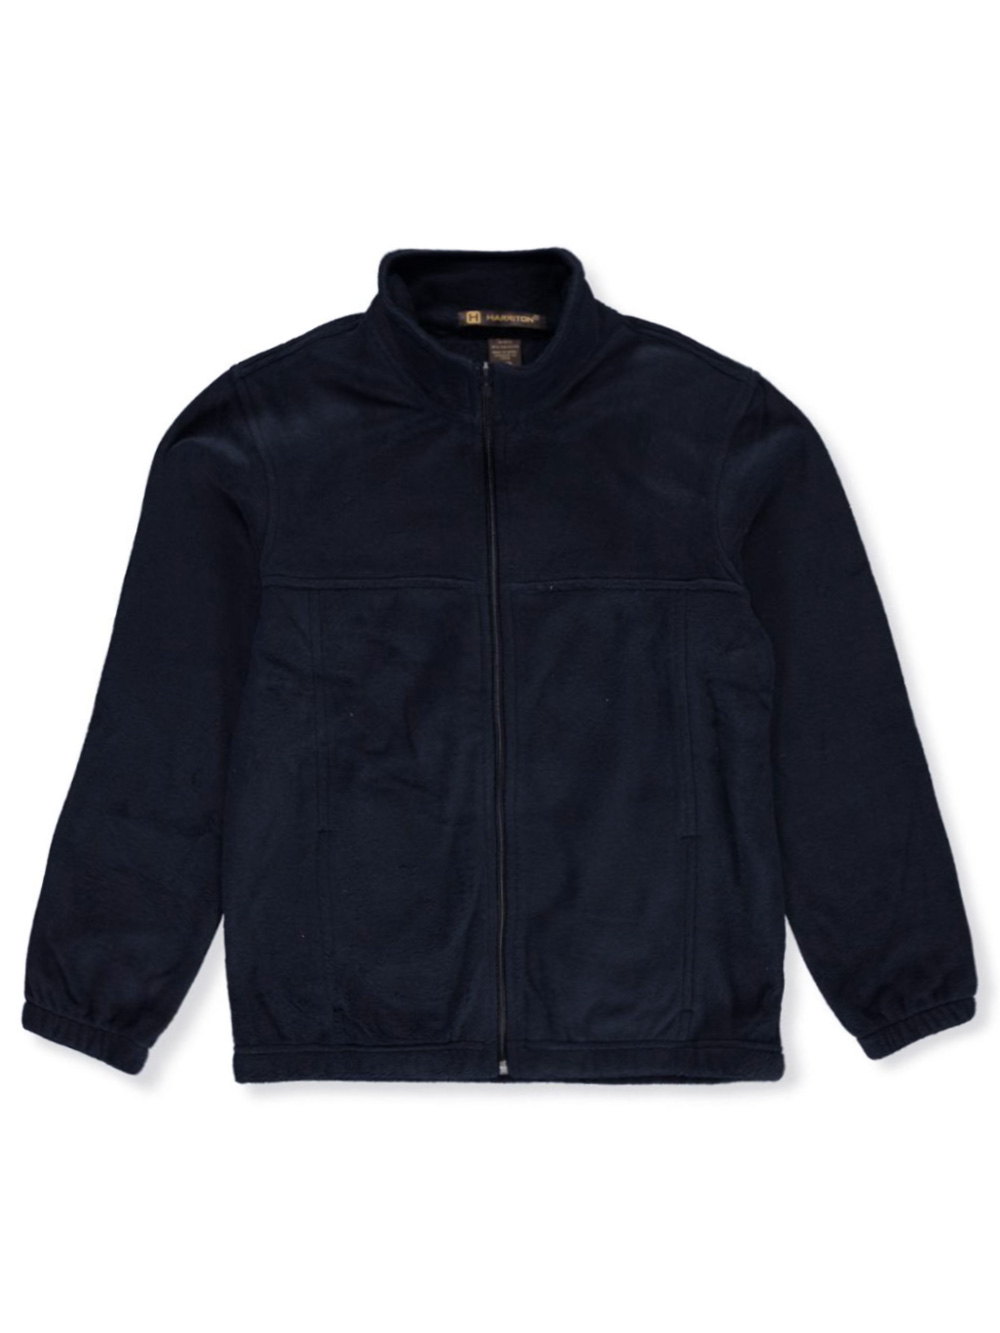 Jackets Fleece Jacket